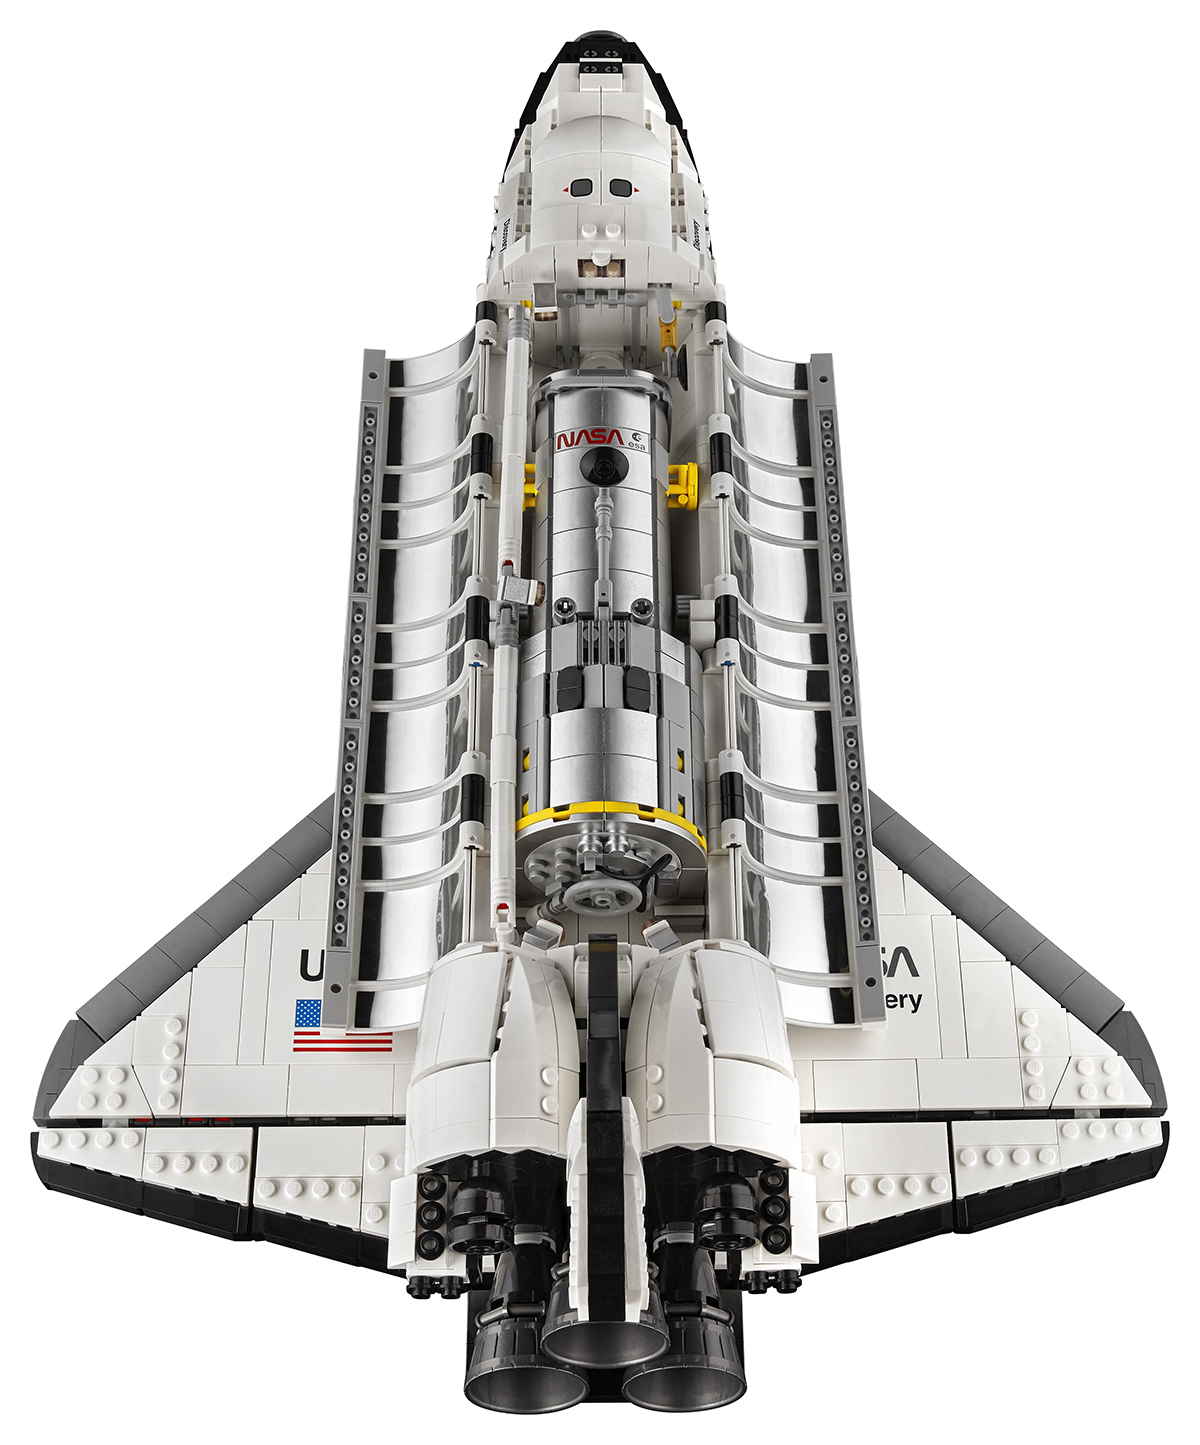 lego-nasa-space-shuttle-discovery-product-4